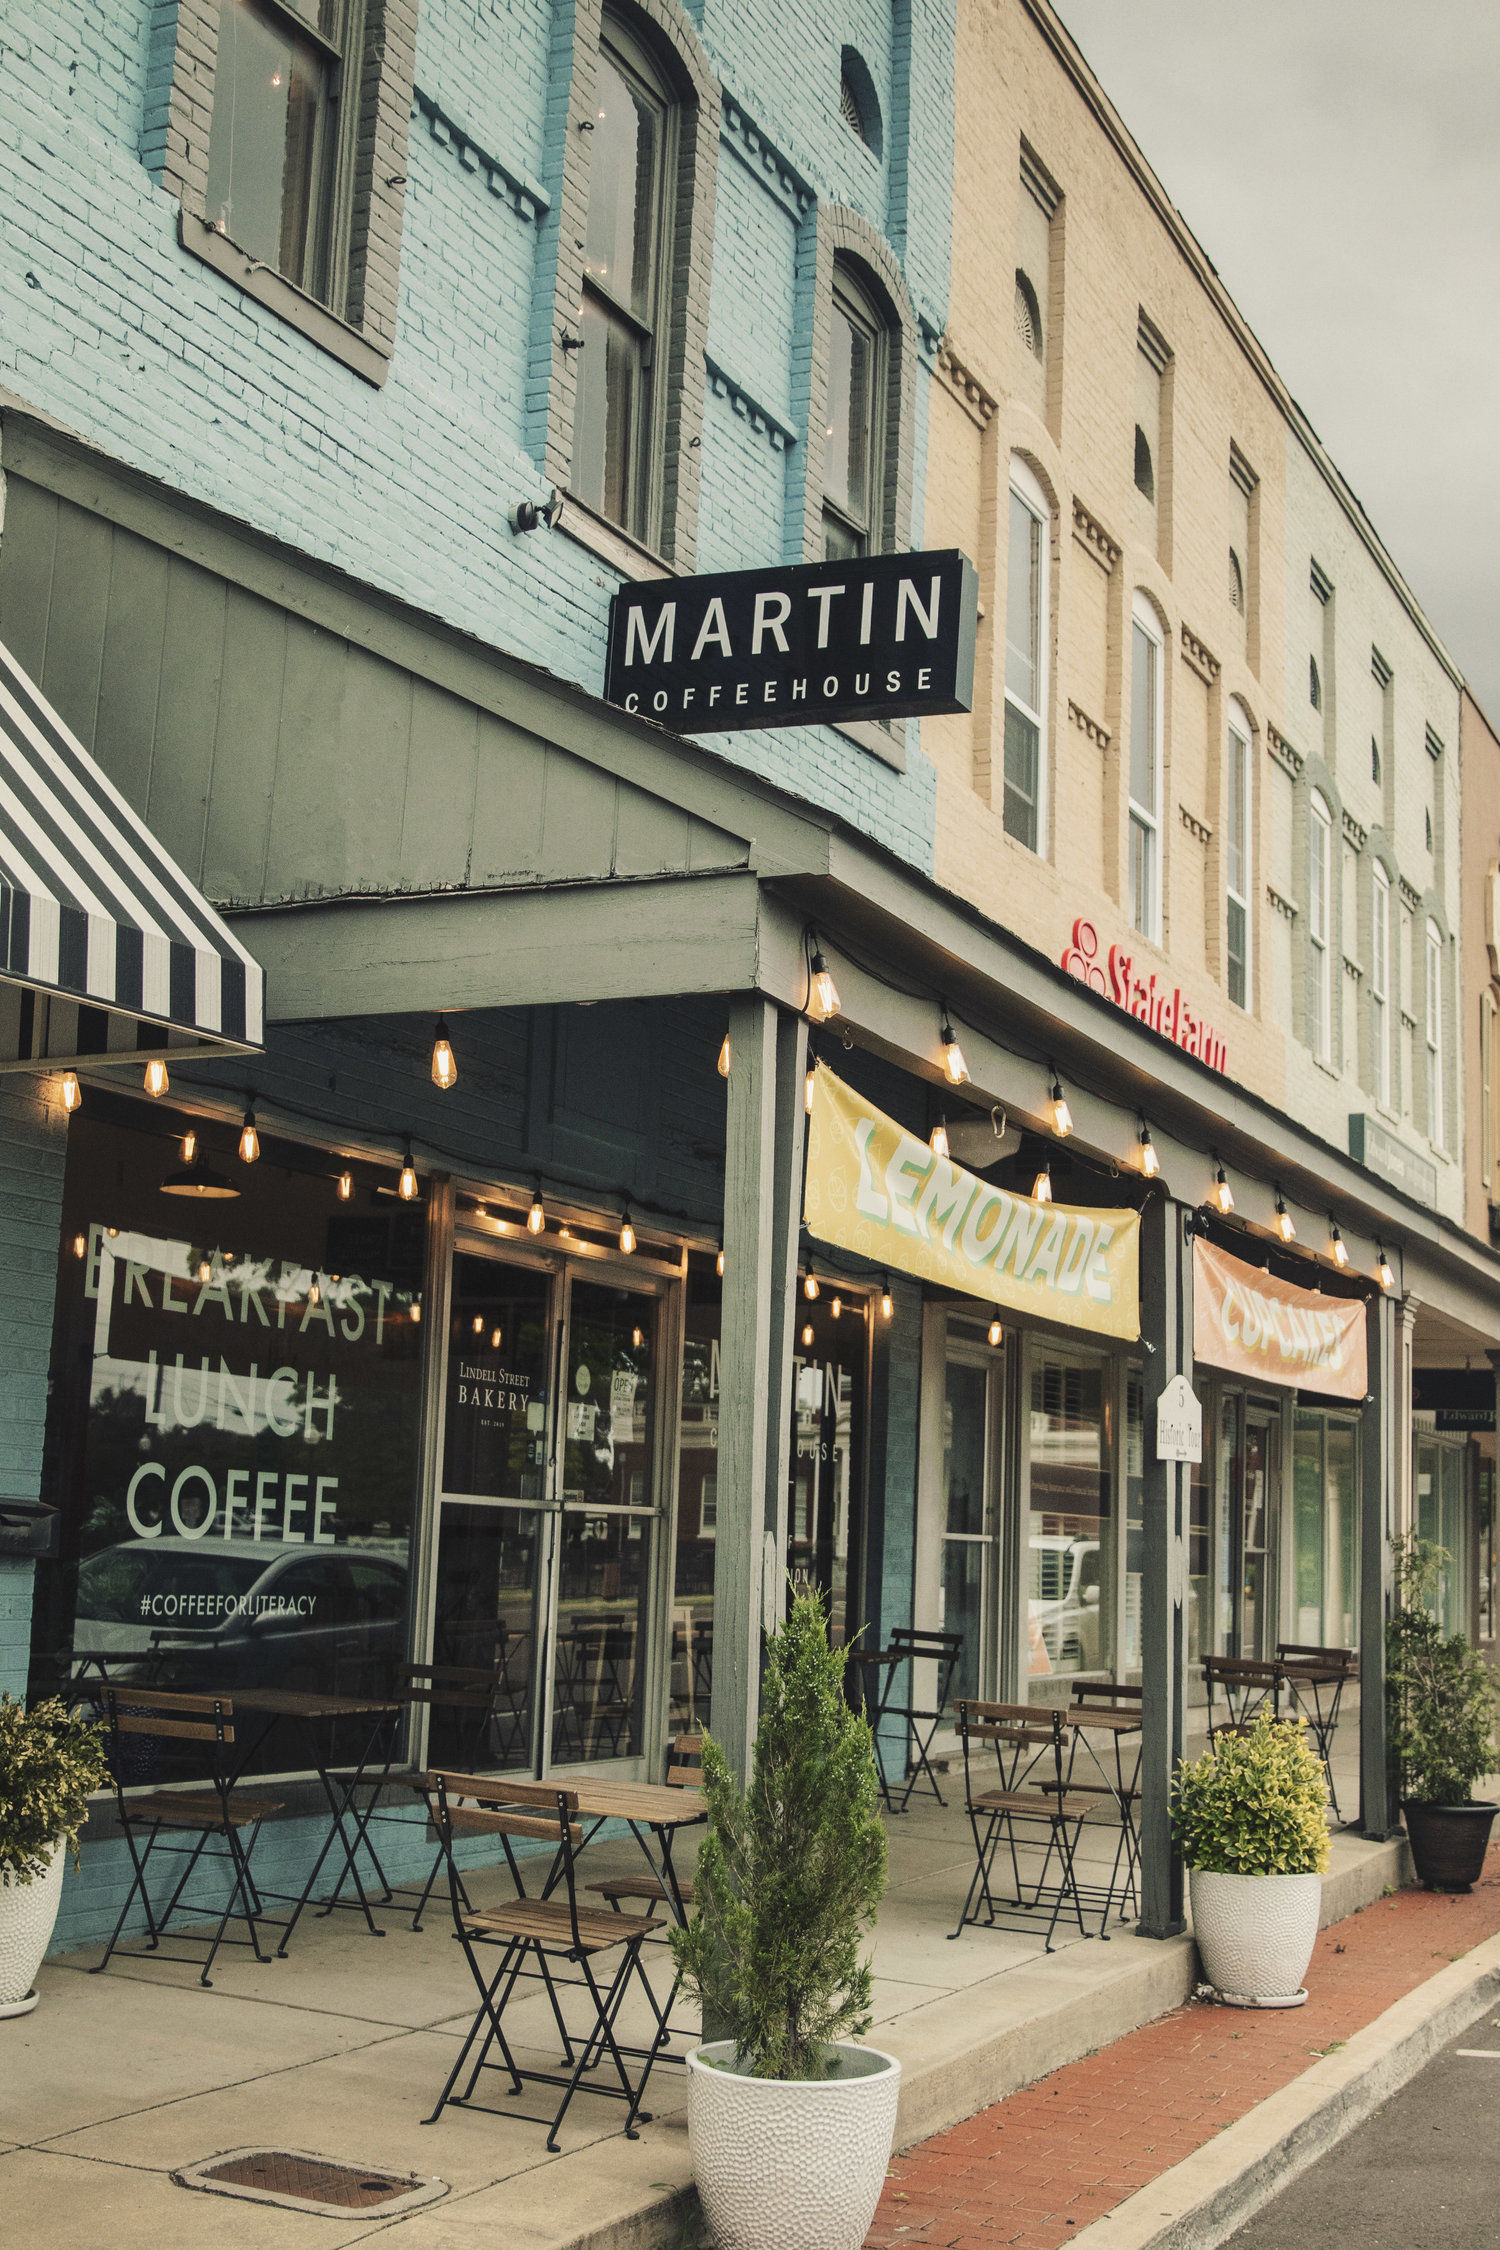 Front+of+Martin+Coffeehouse+Building.jpg